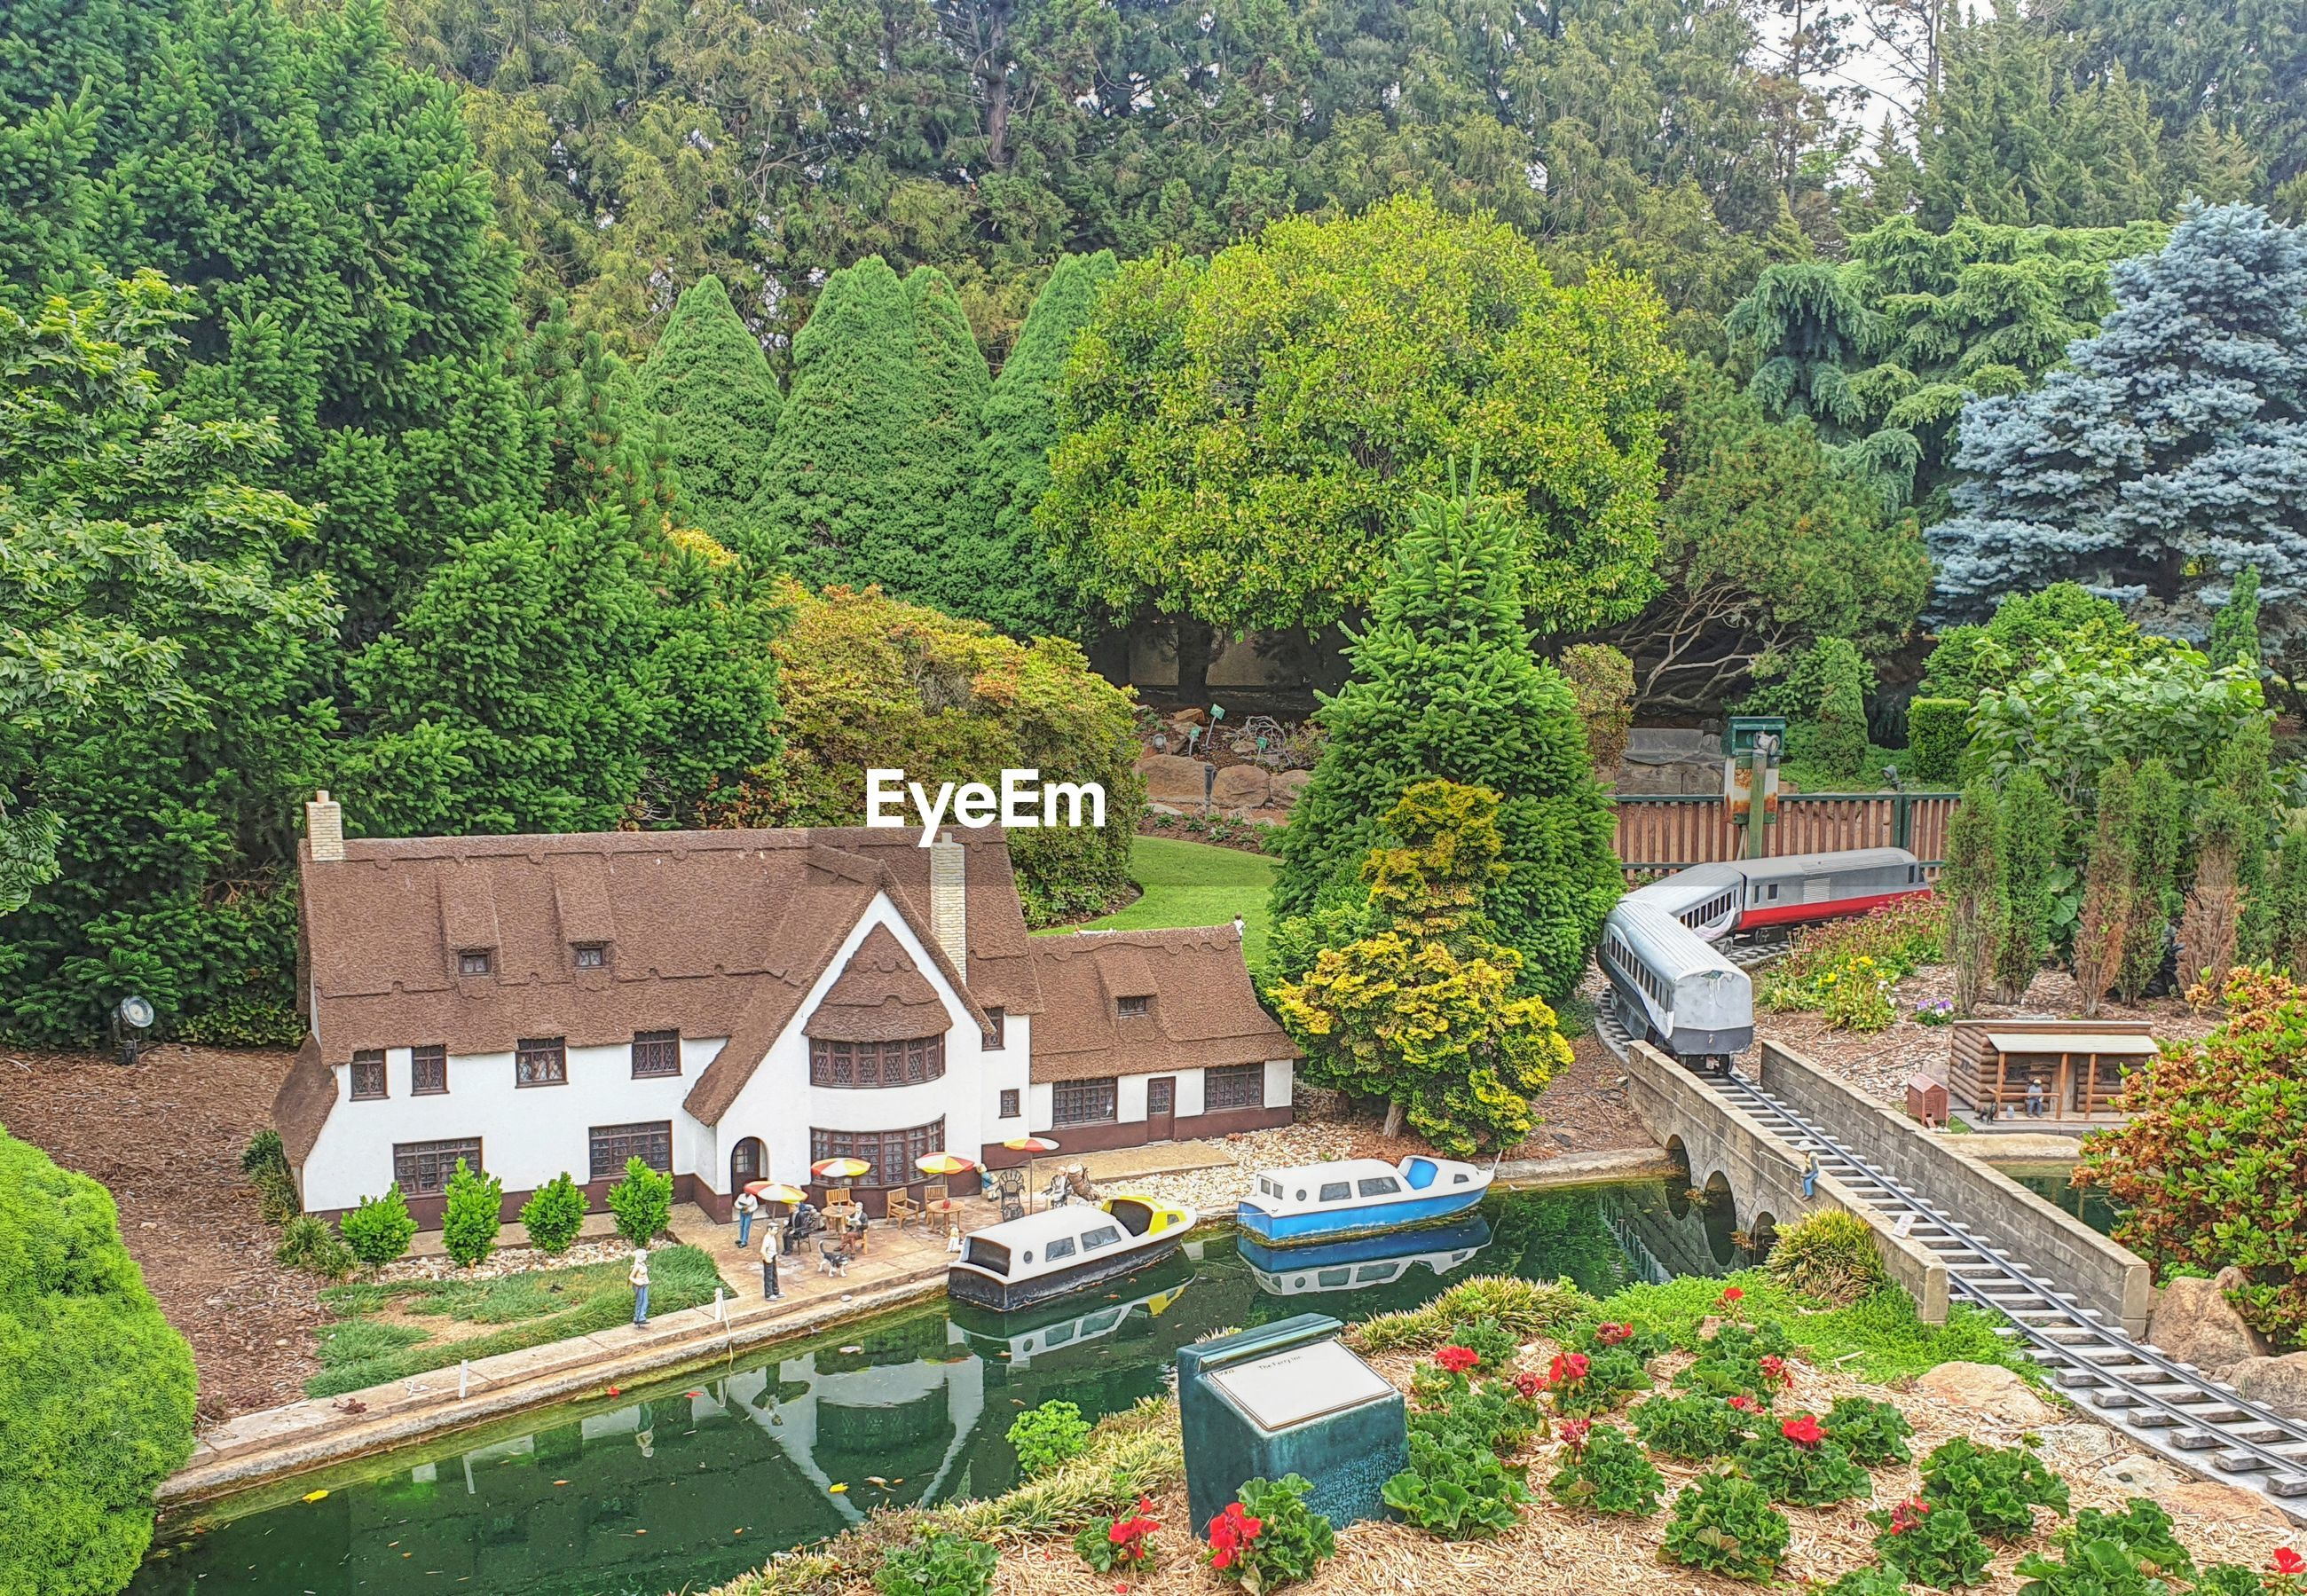 HIGH ANGLE VIEW OF TREES AND PLANTS GROWING OUTSIDE HOUSE